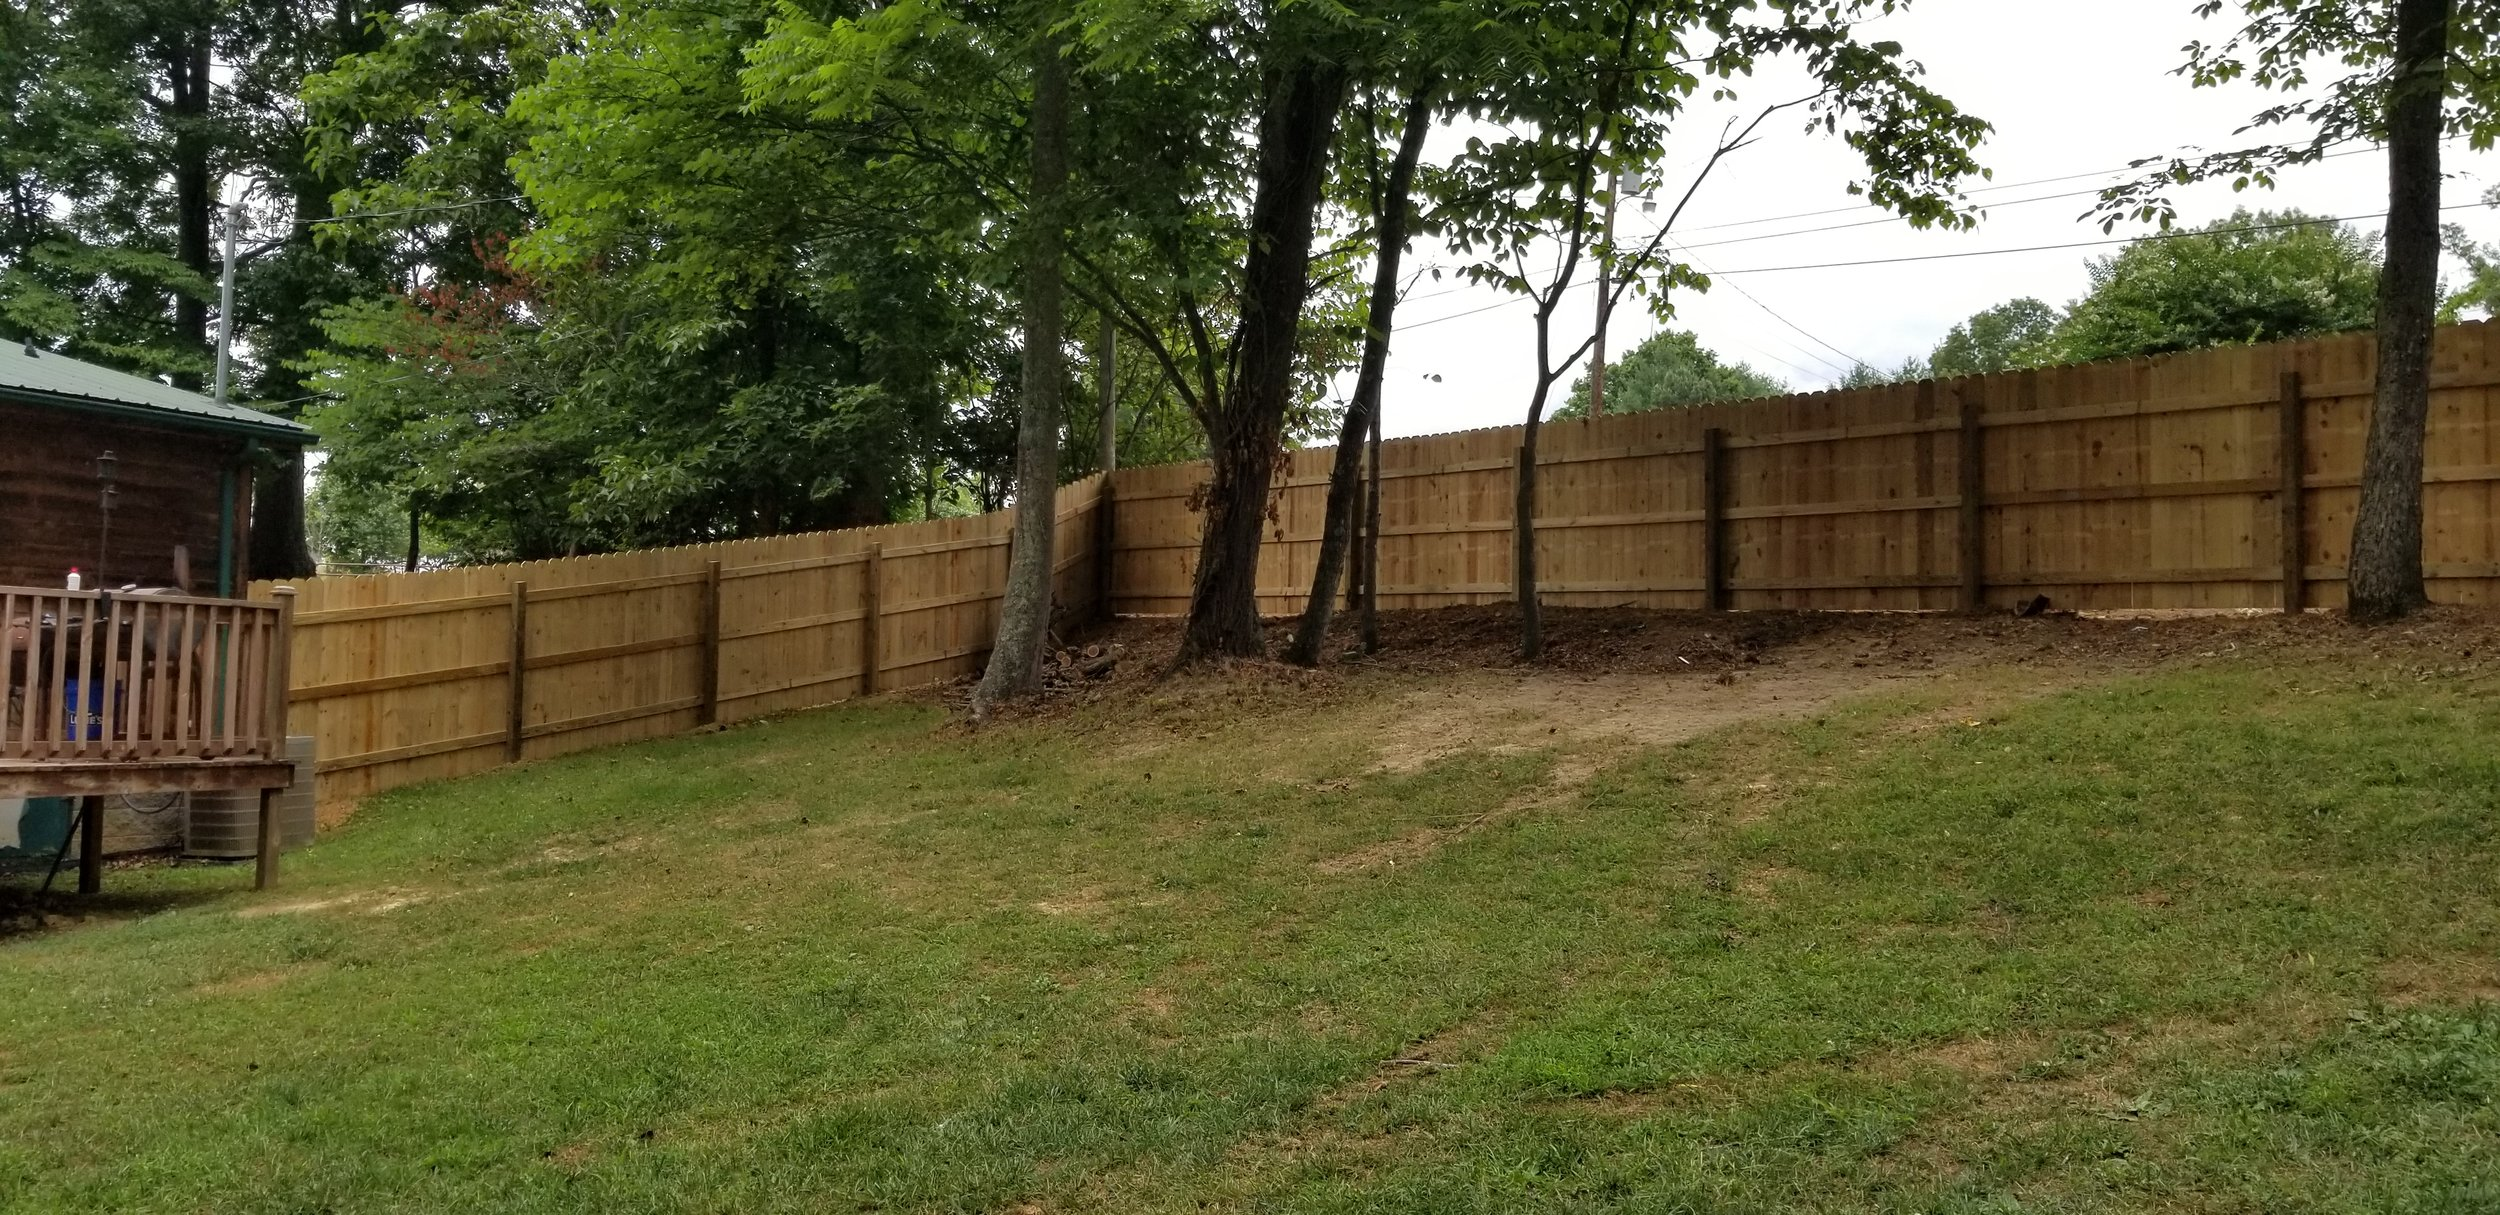 New Wood Privacy Fence (Greeneville, Tn)